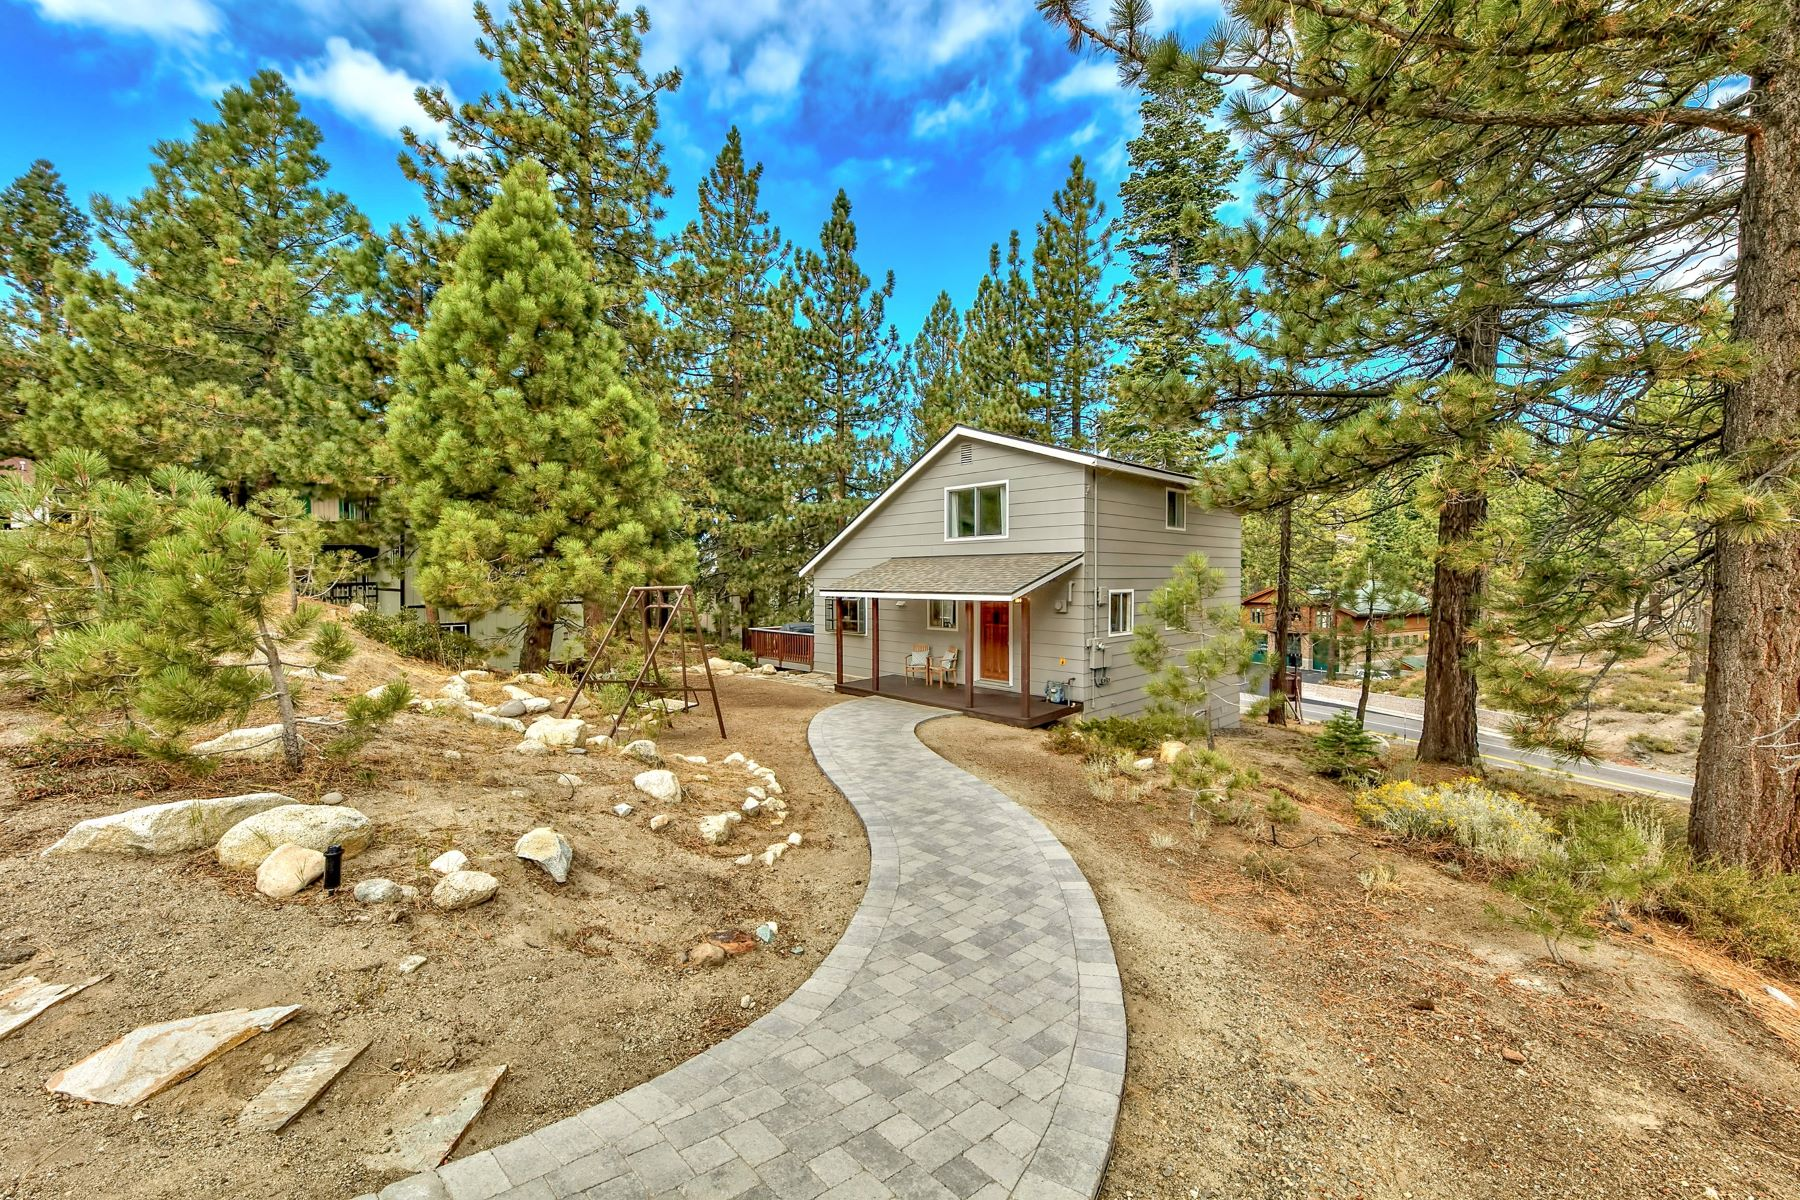 Single Family Homes for Active at 748 Tina Ct, Stateline NV 89449 748 Tina Ct. Stateline, Nevada 89449 United States